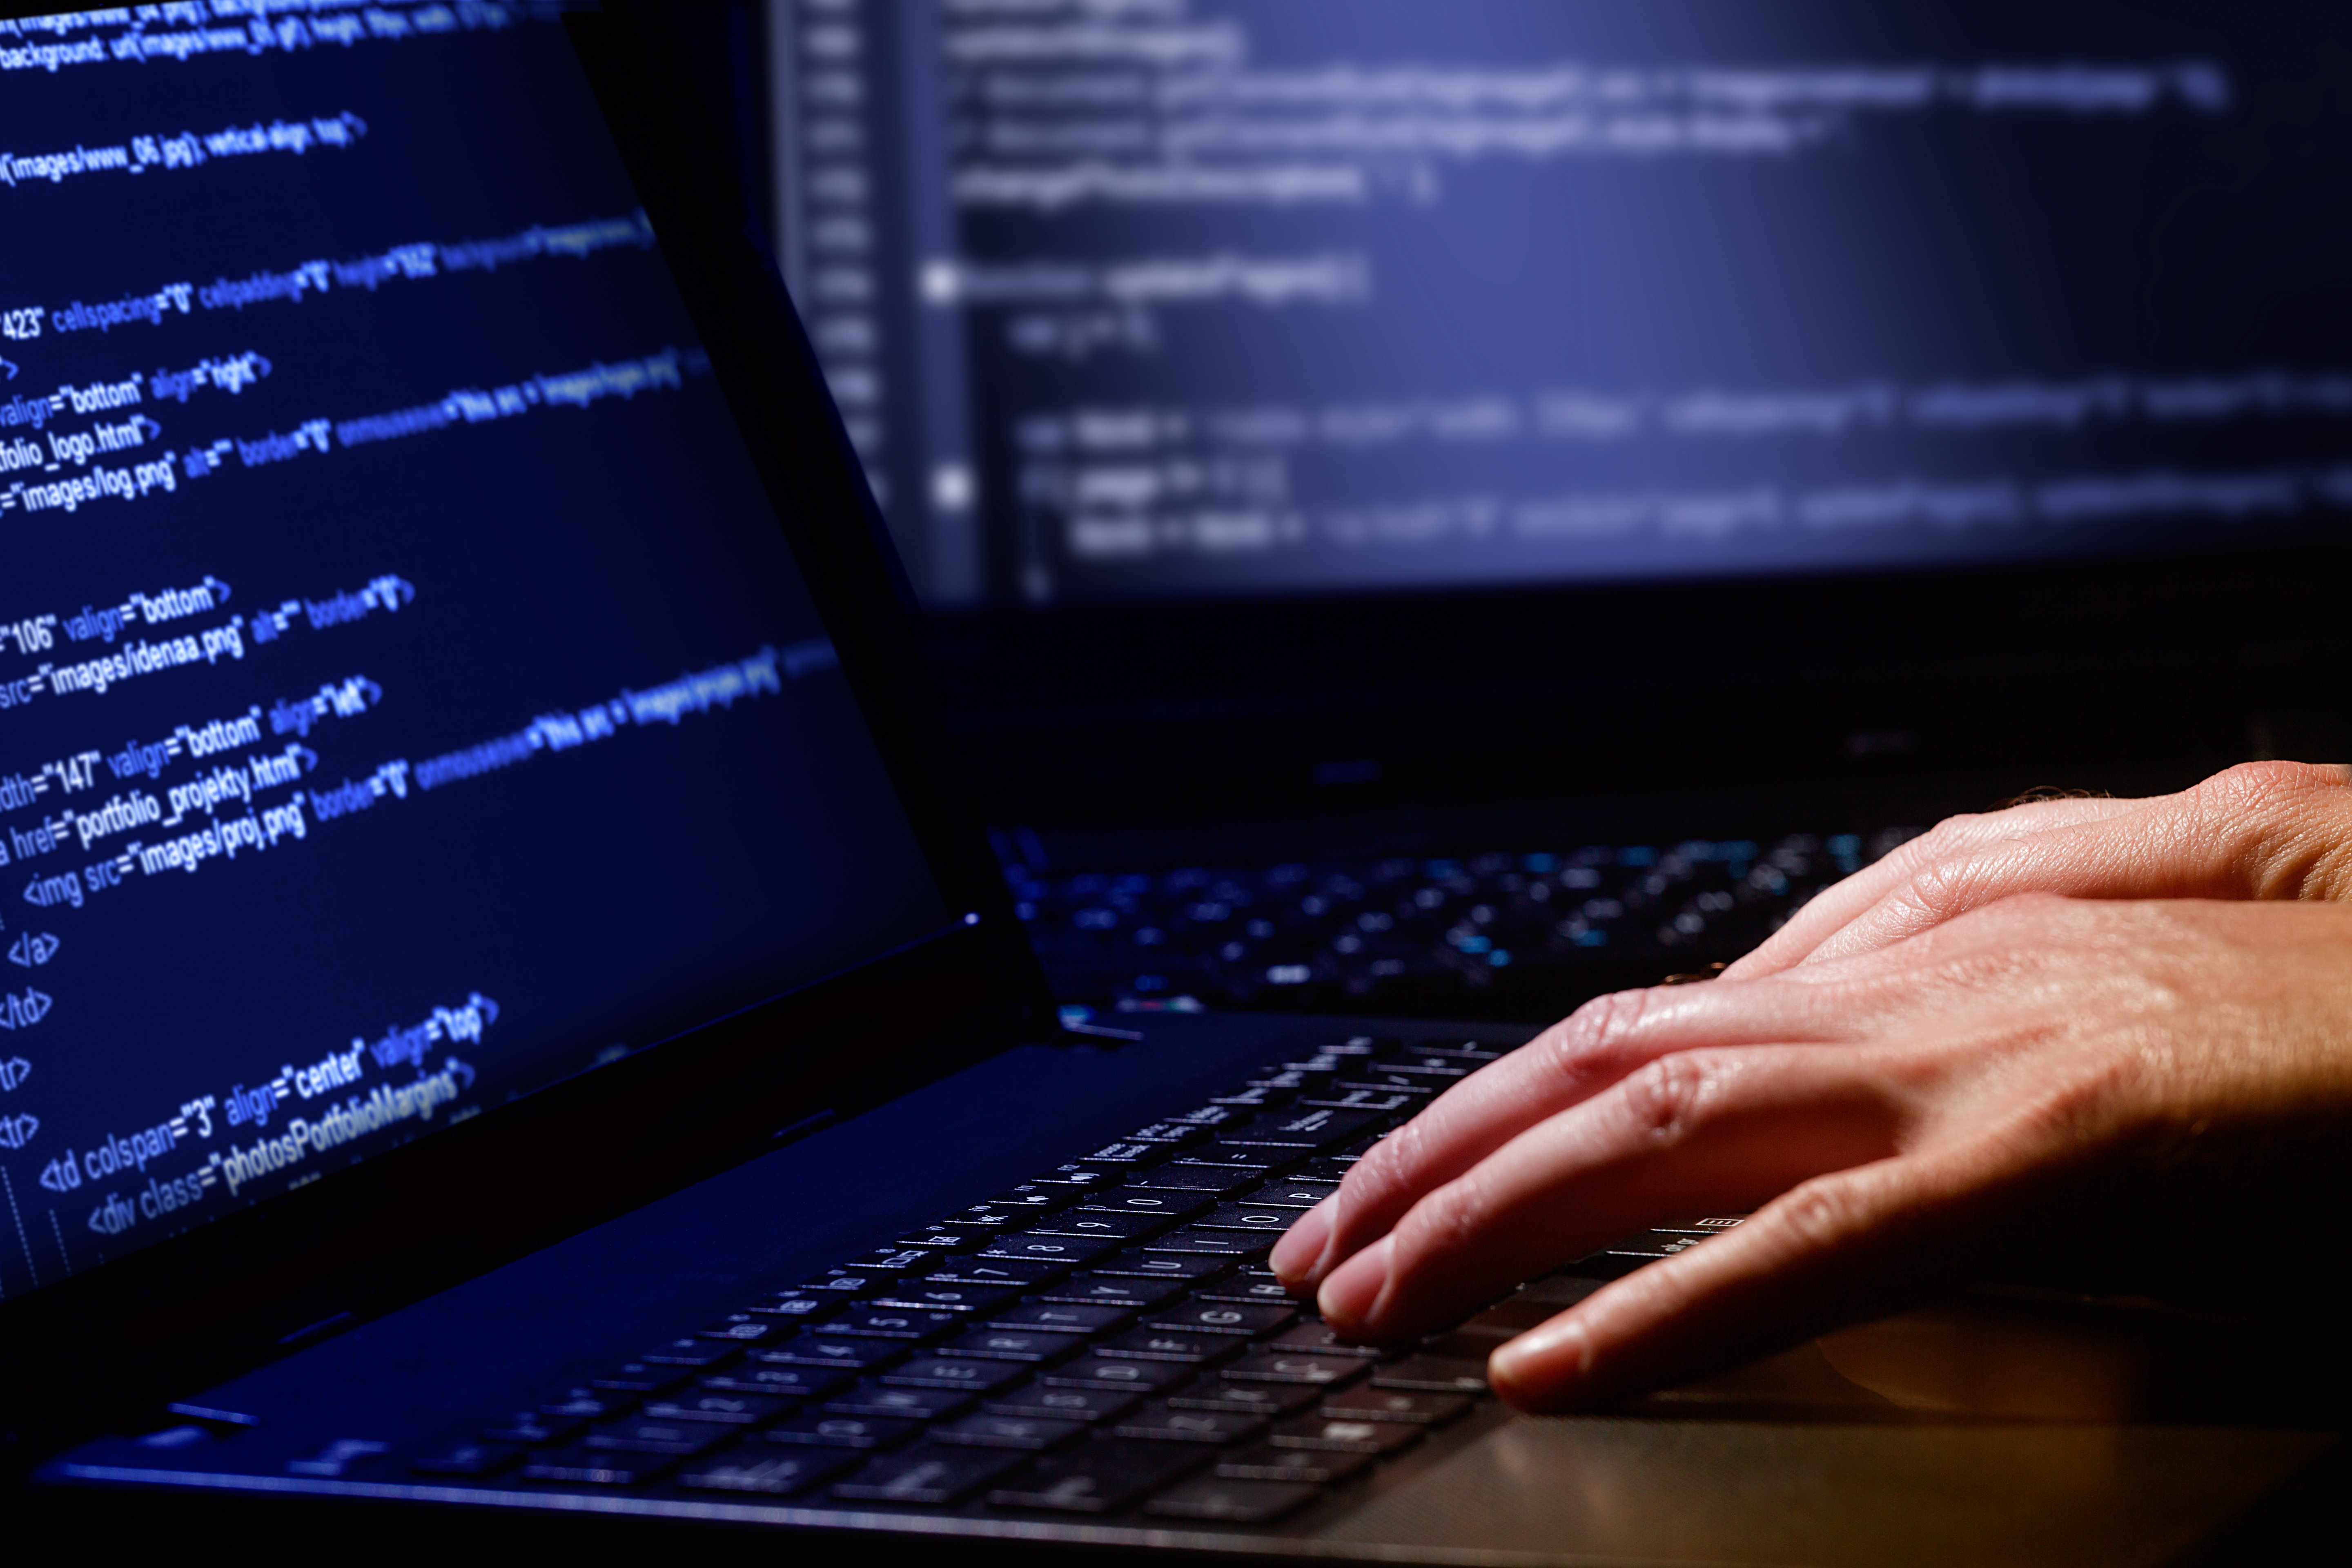 Tech-Based Cybersecurity Can't Stop 'People Risk'